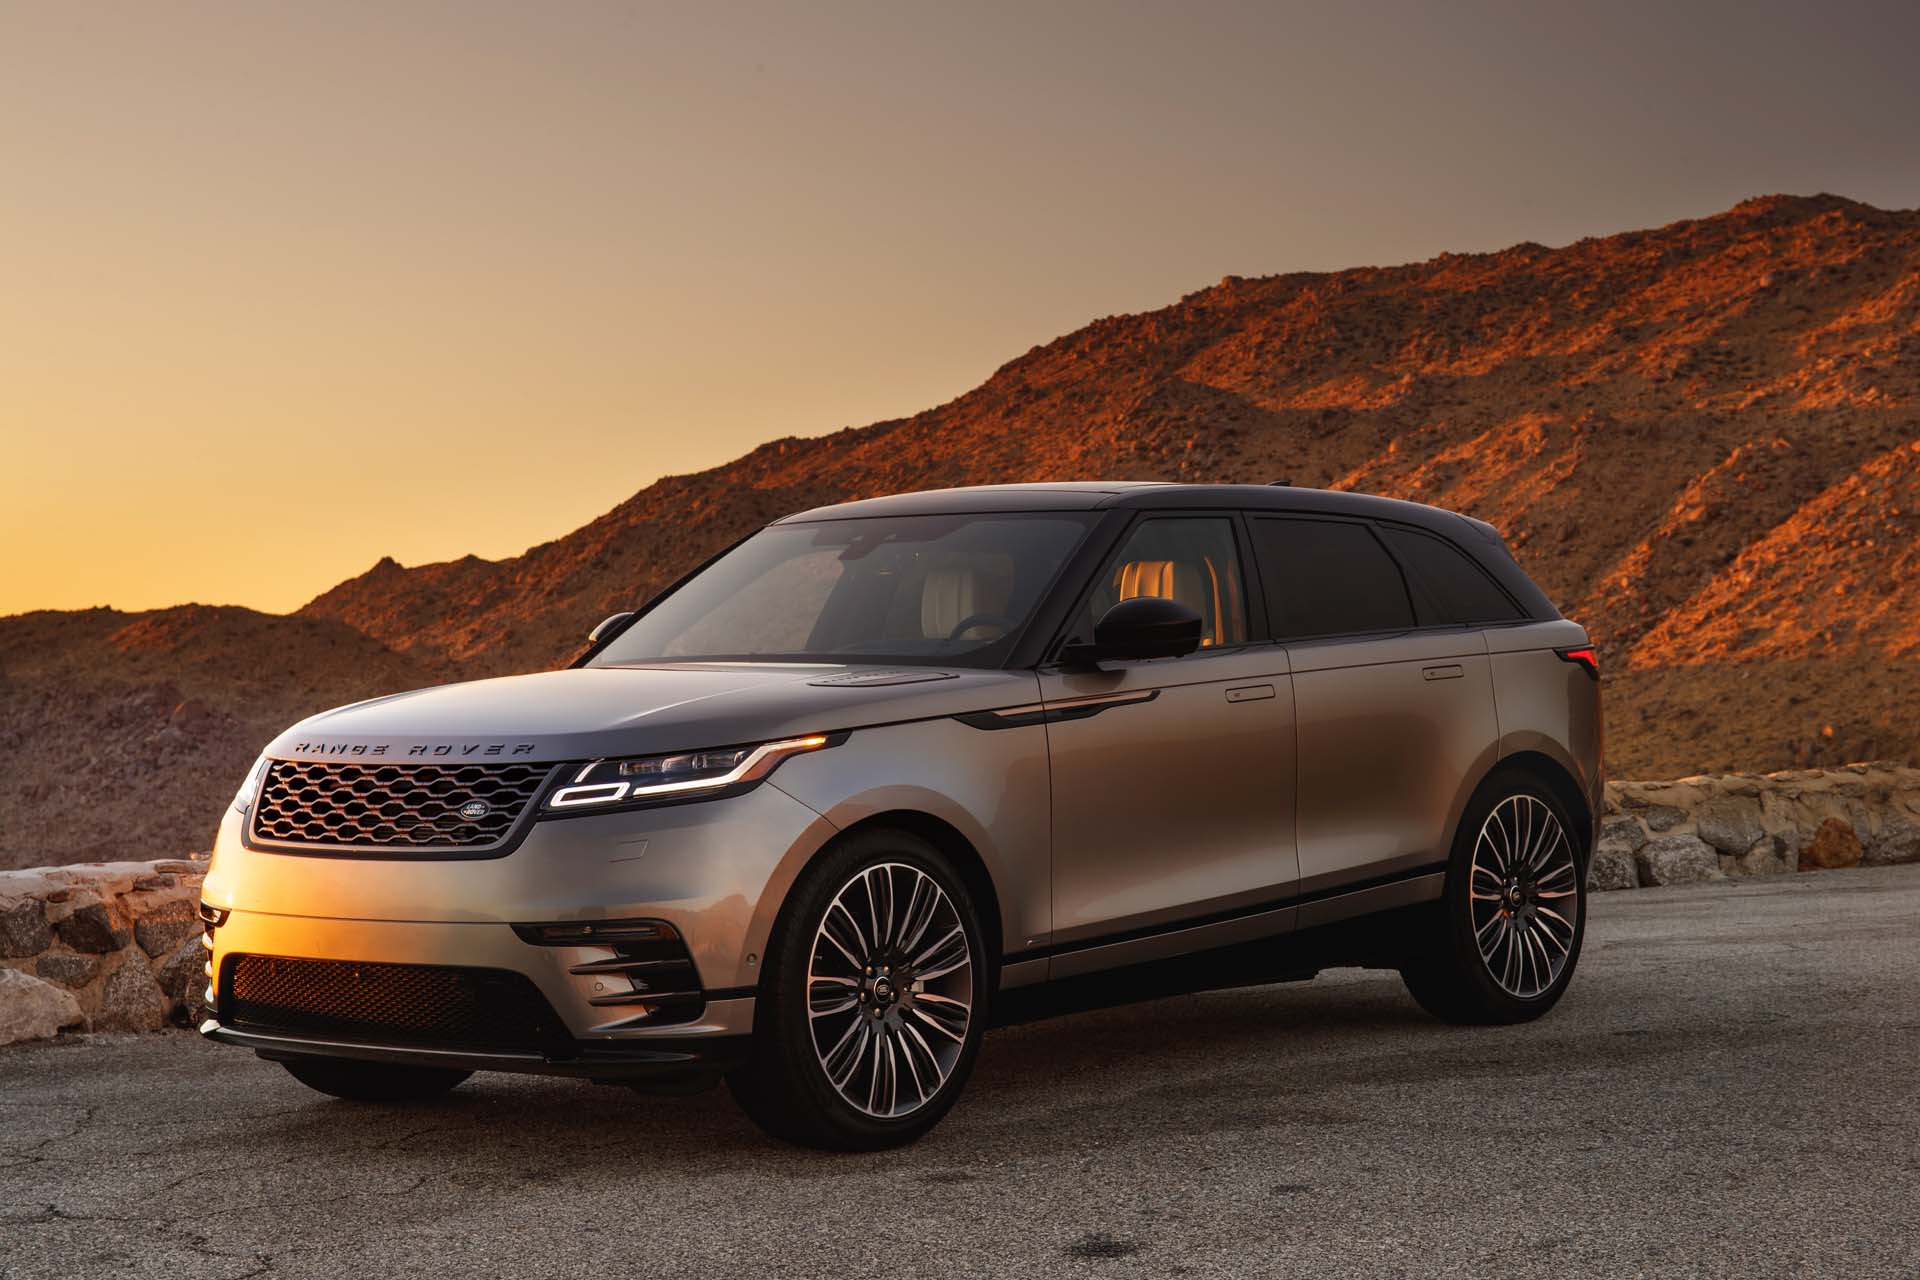 2018 land rover range rover velar review ratings specs prices and photos the car connection. Black Bedroom Furniture Sets. Home Design Ideas